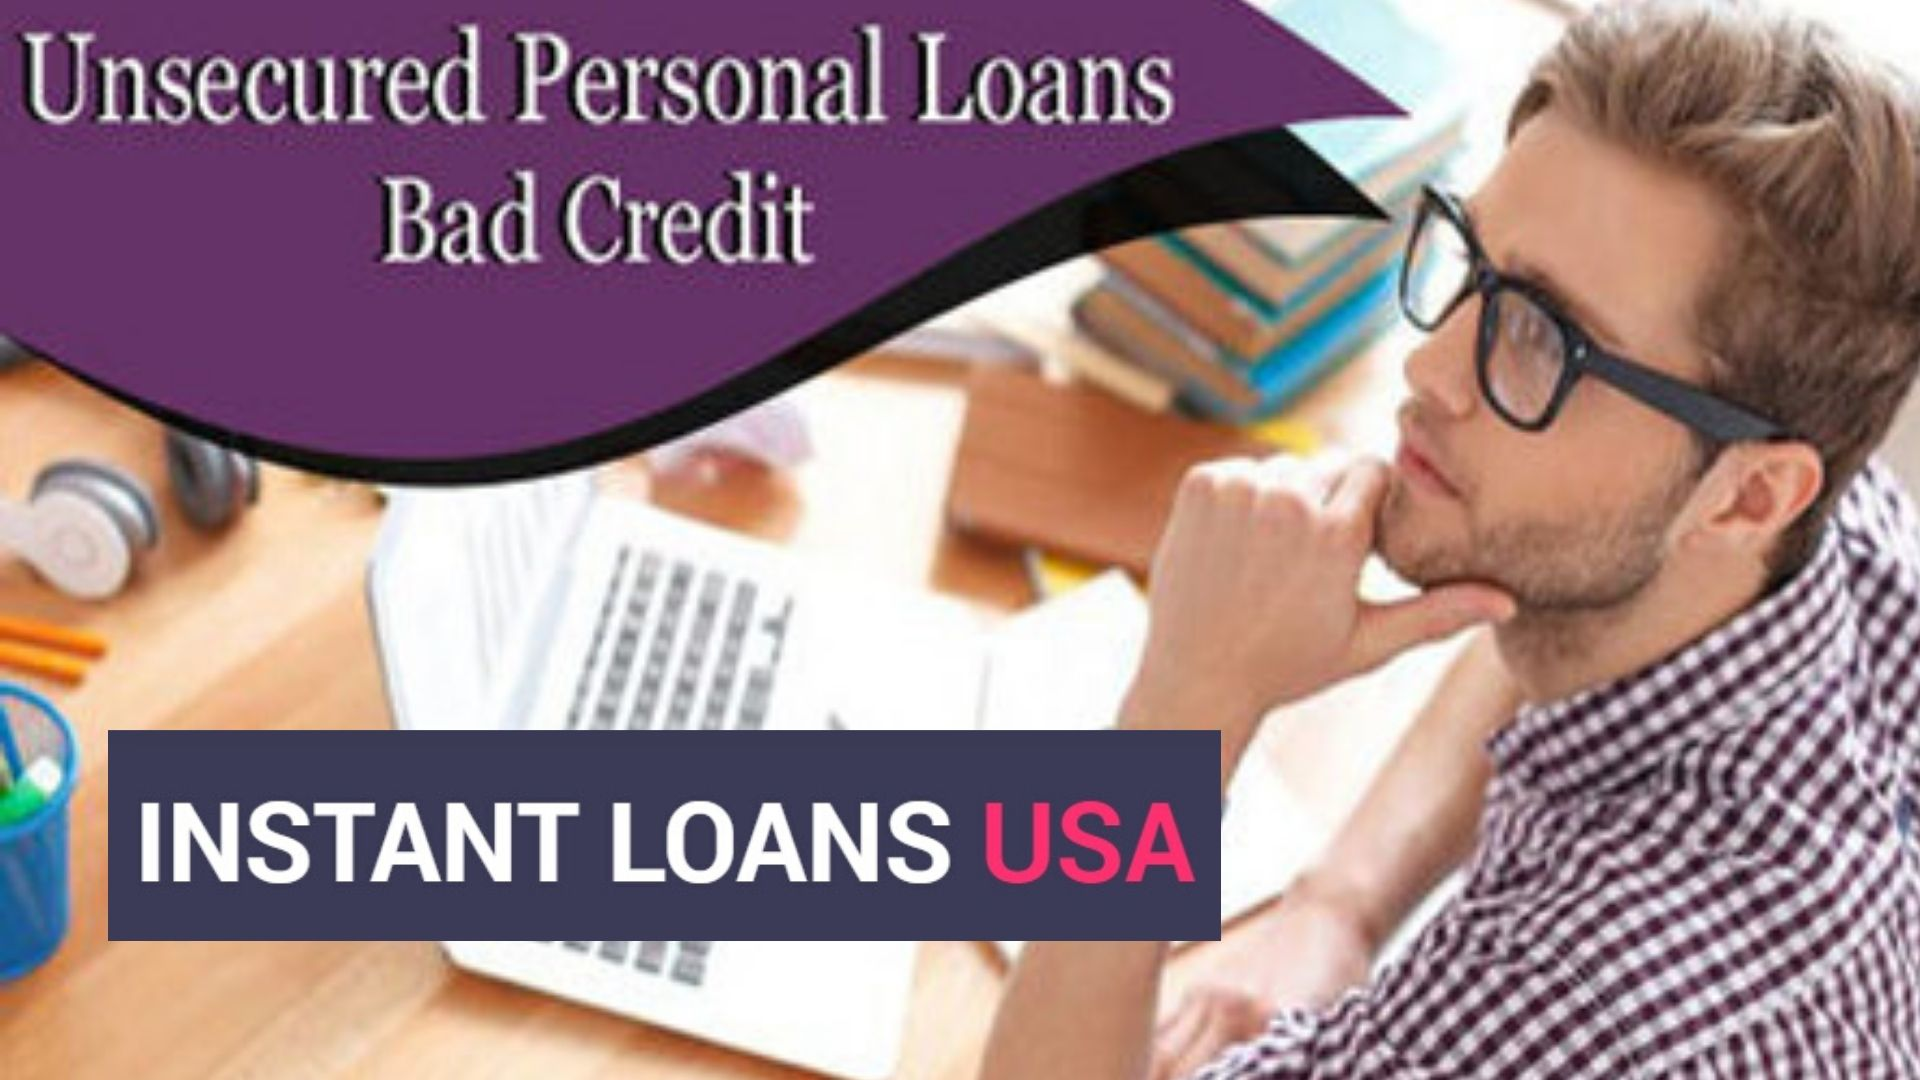 Quick Unsecured Personal Loans Bad Credit